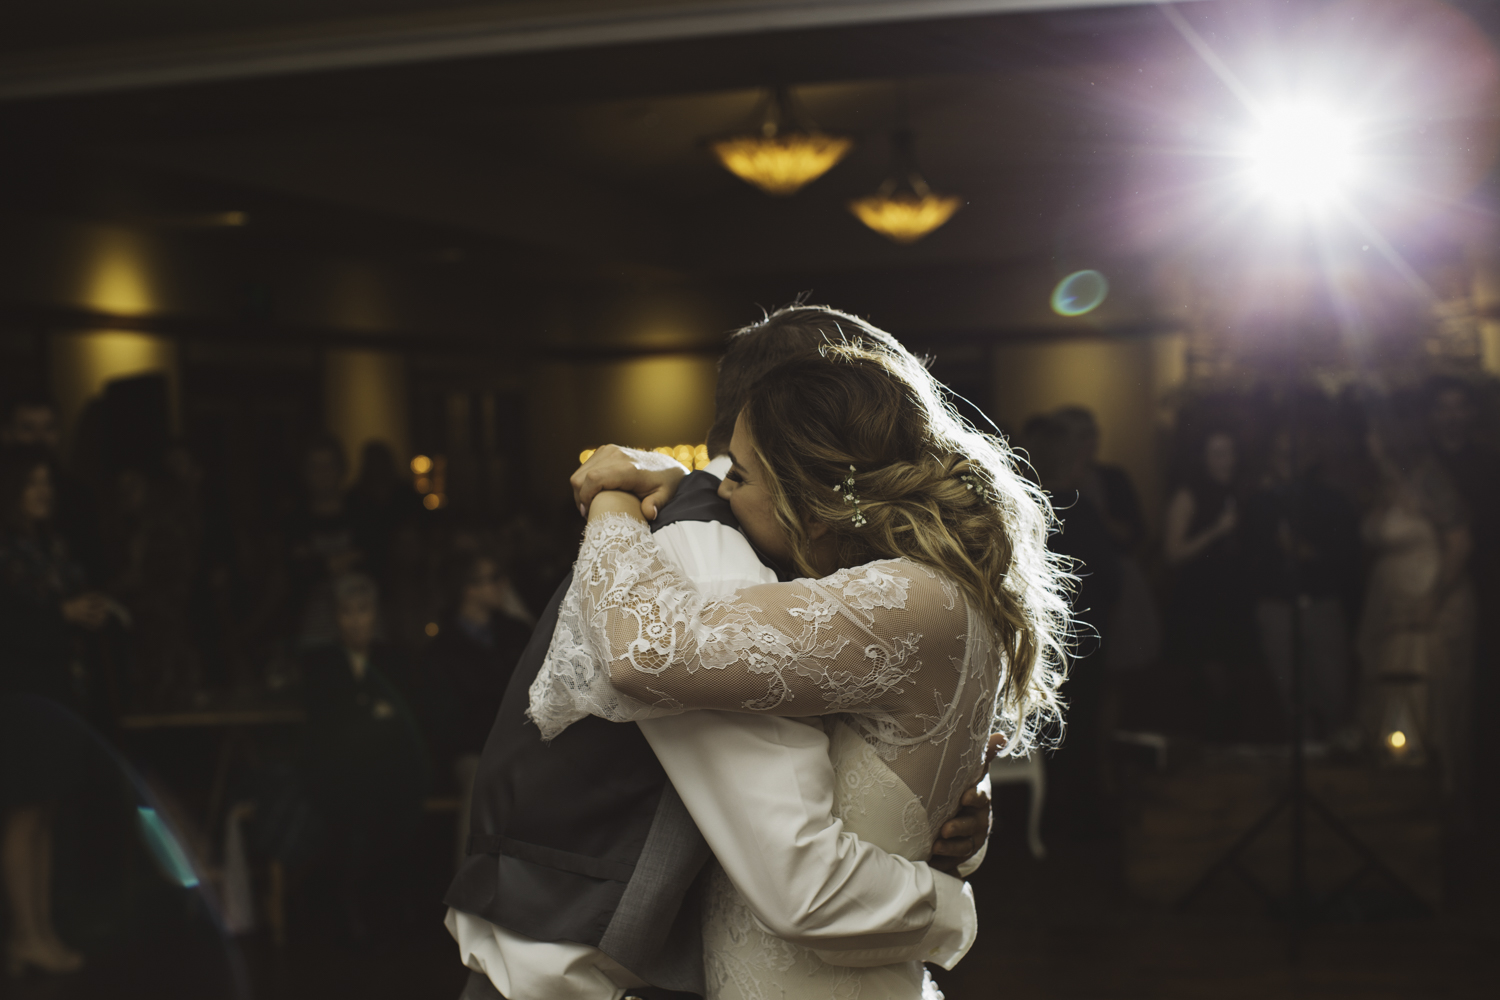 sarah-danielle-photography-intimate-portland-wedding-143.jpg